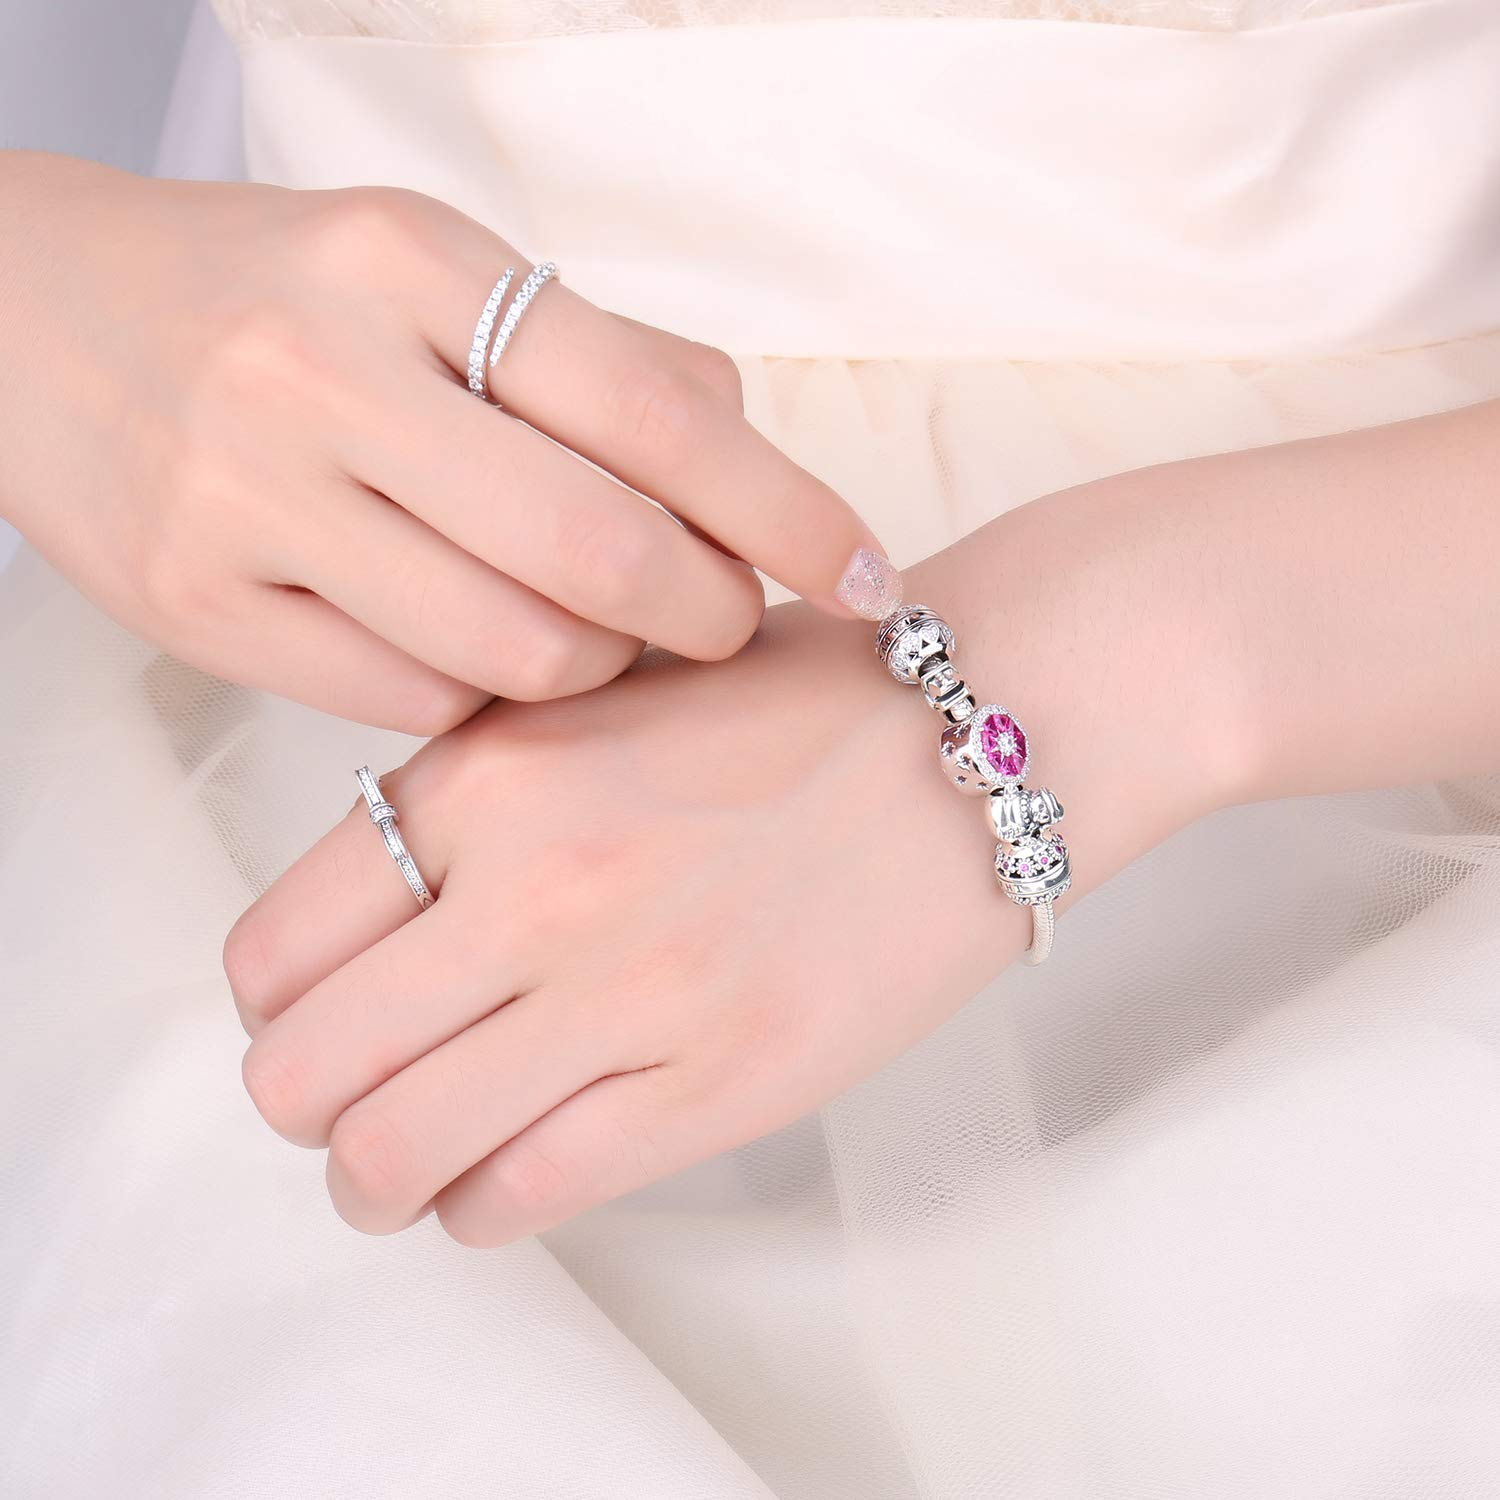 JewelryPalace Family Love Collection Beads Charm fit Bracelet 925 Sterling Silver